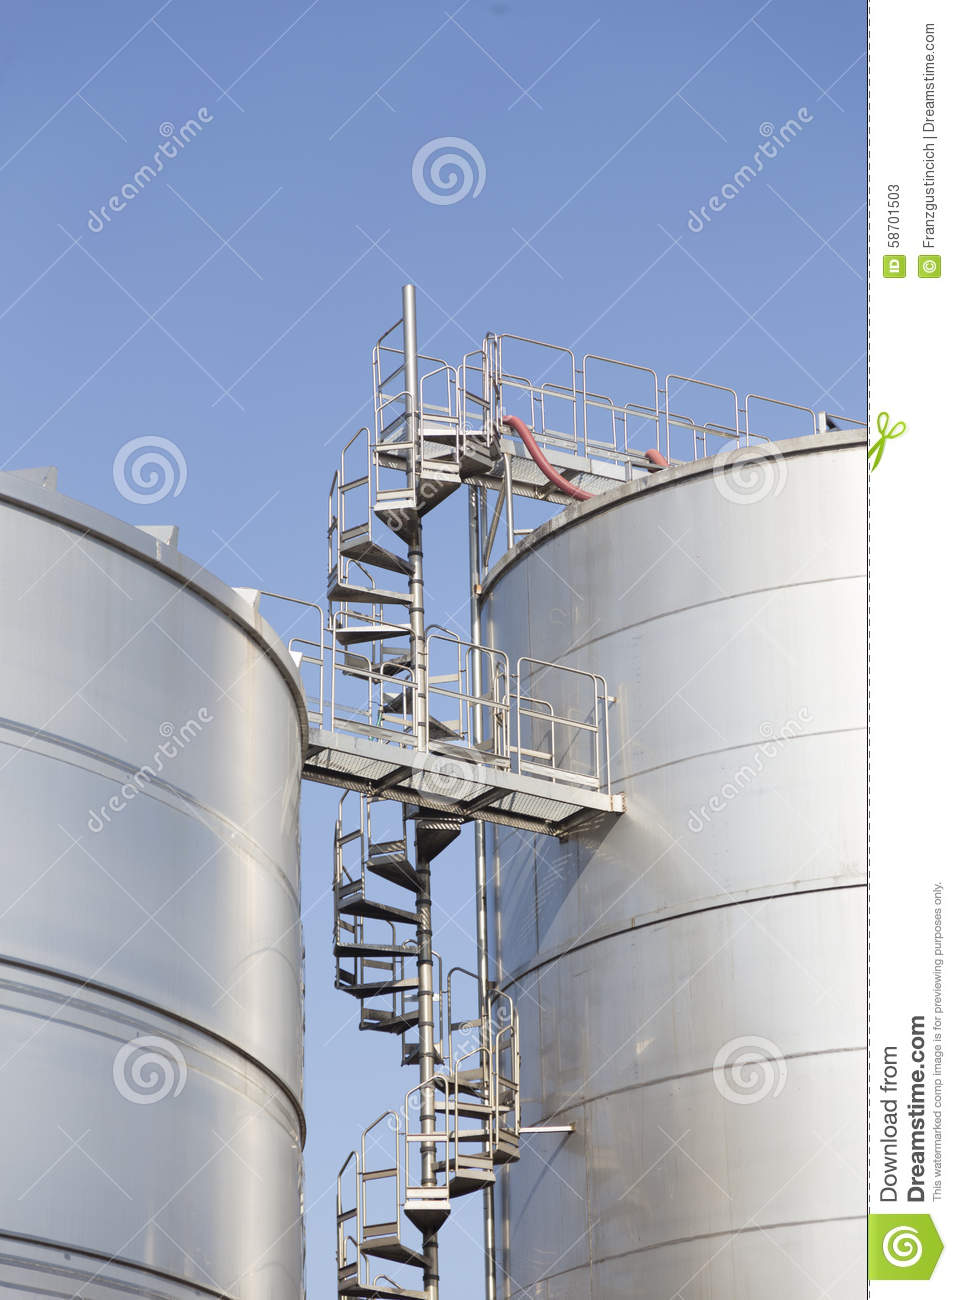 Cellino San Marco Italy  city images : Wine Silos In Cellino San Marco Italy Stock Photo Image: 58701503